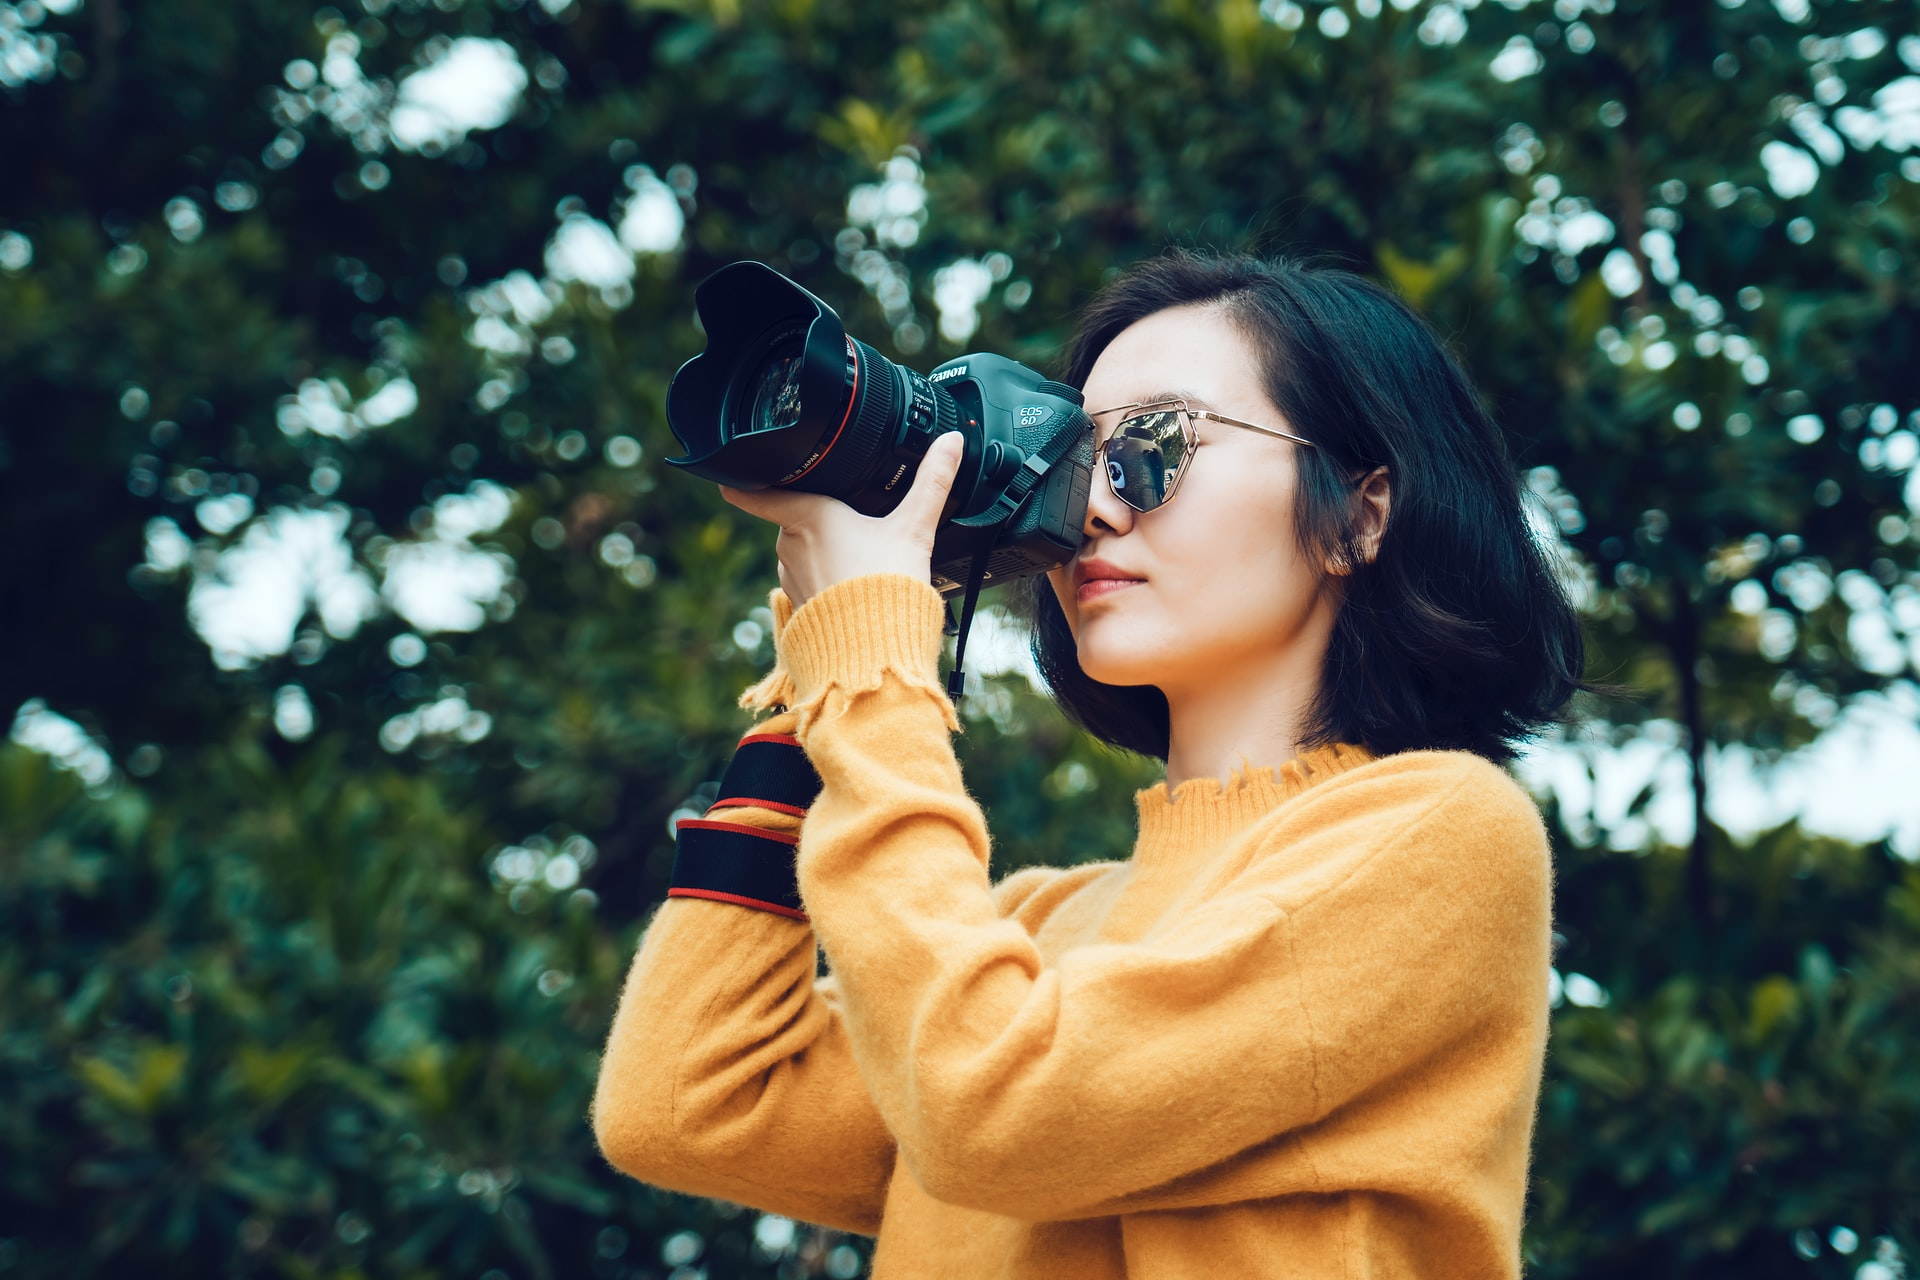 Let Your Photography Make You Happier and More Content